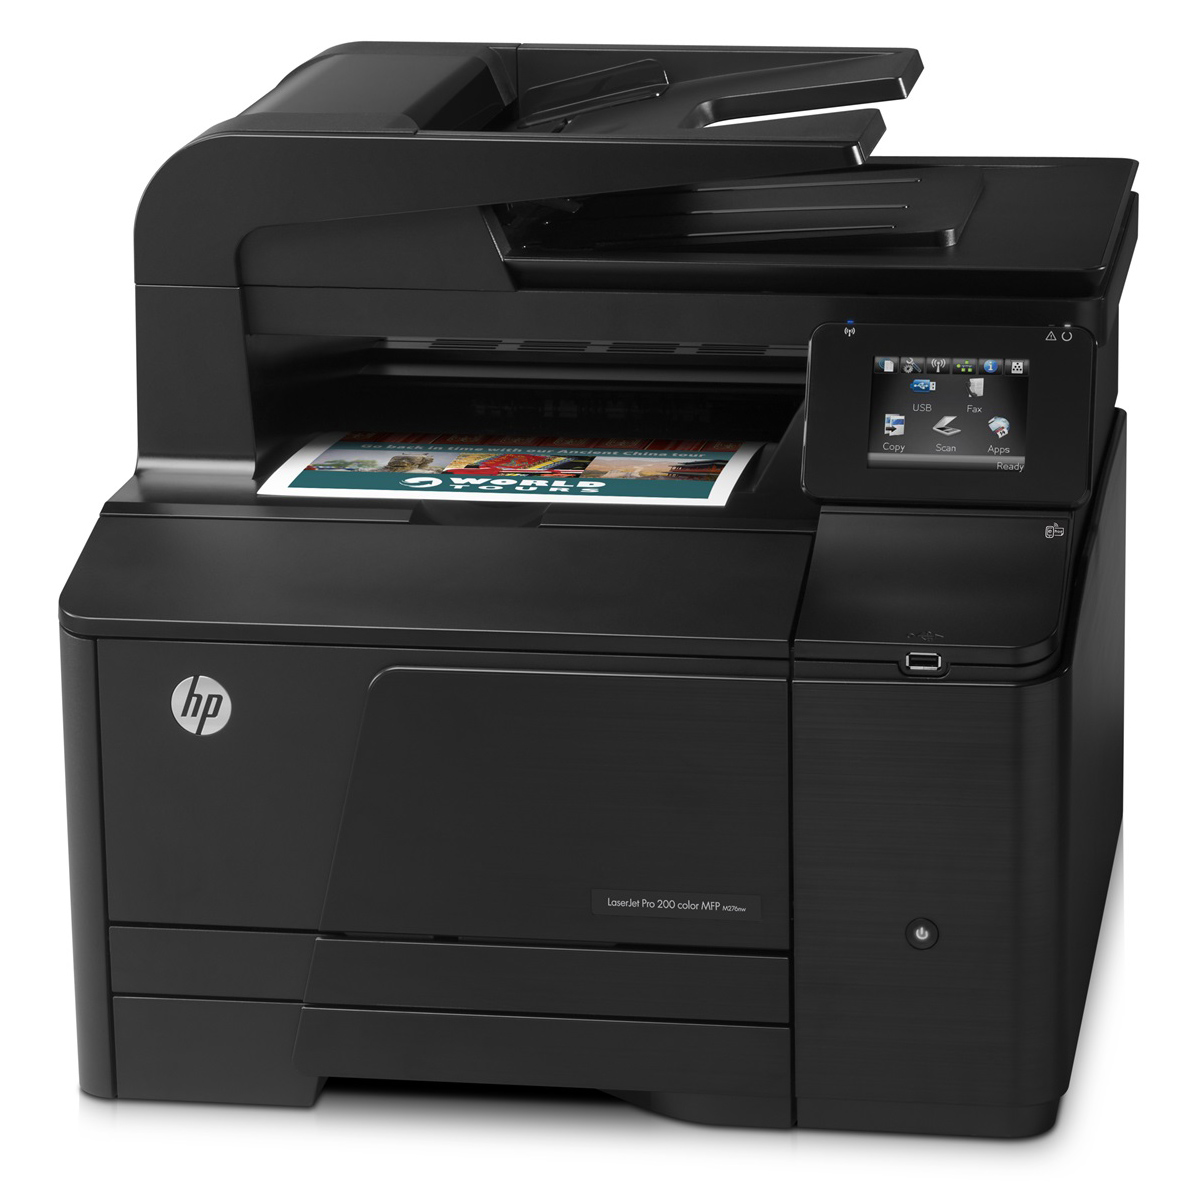 hp laserjet pro 200 color mfp m276nw cf145a imprimante multifonction hp sur. Black Bedroom Furniture Sets. Home Design Ideas